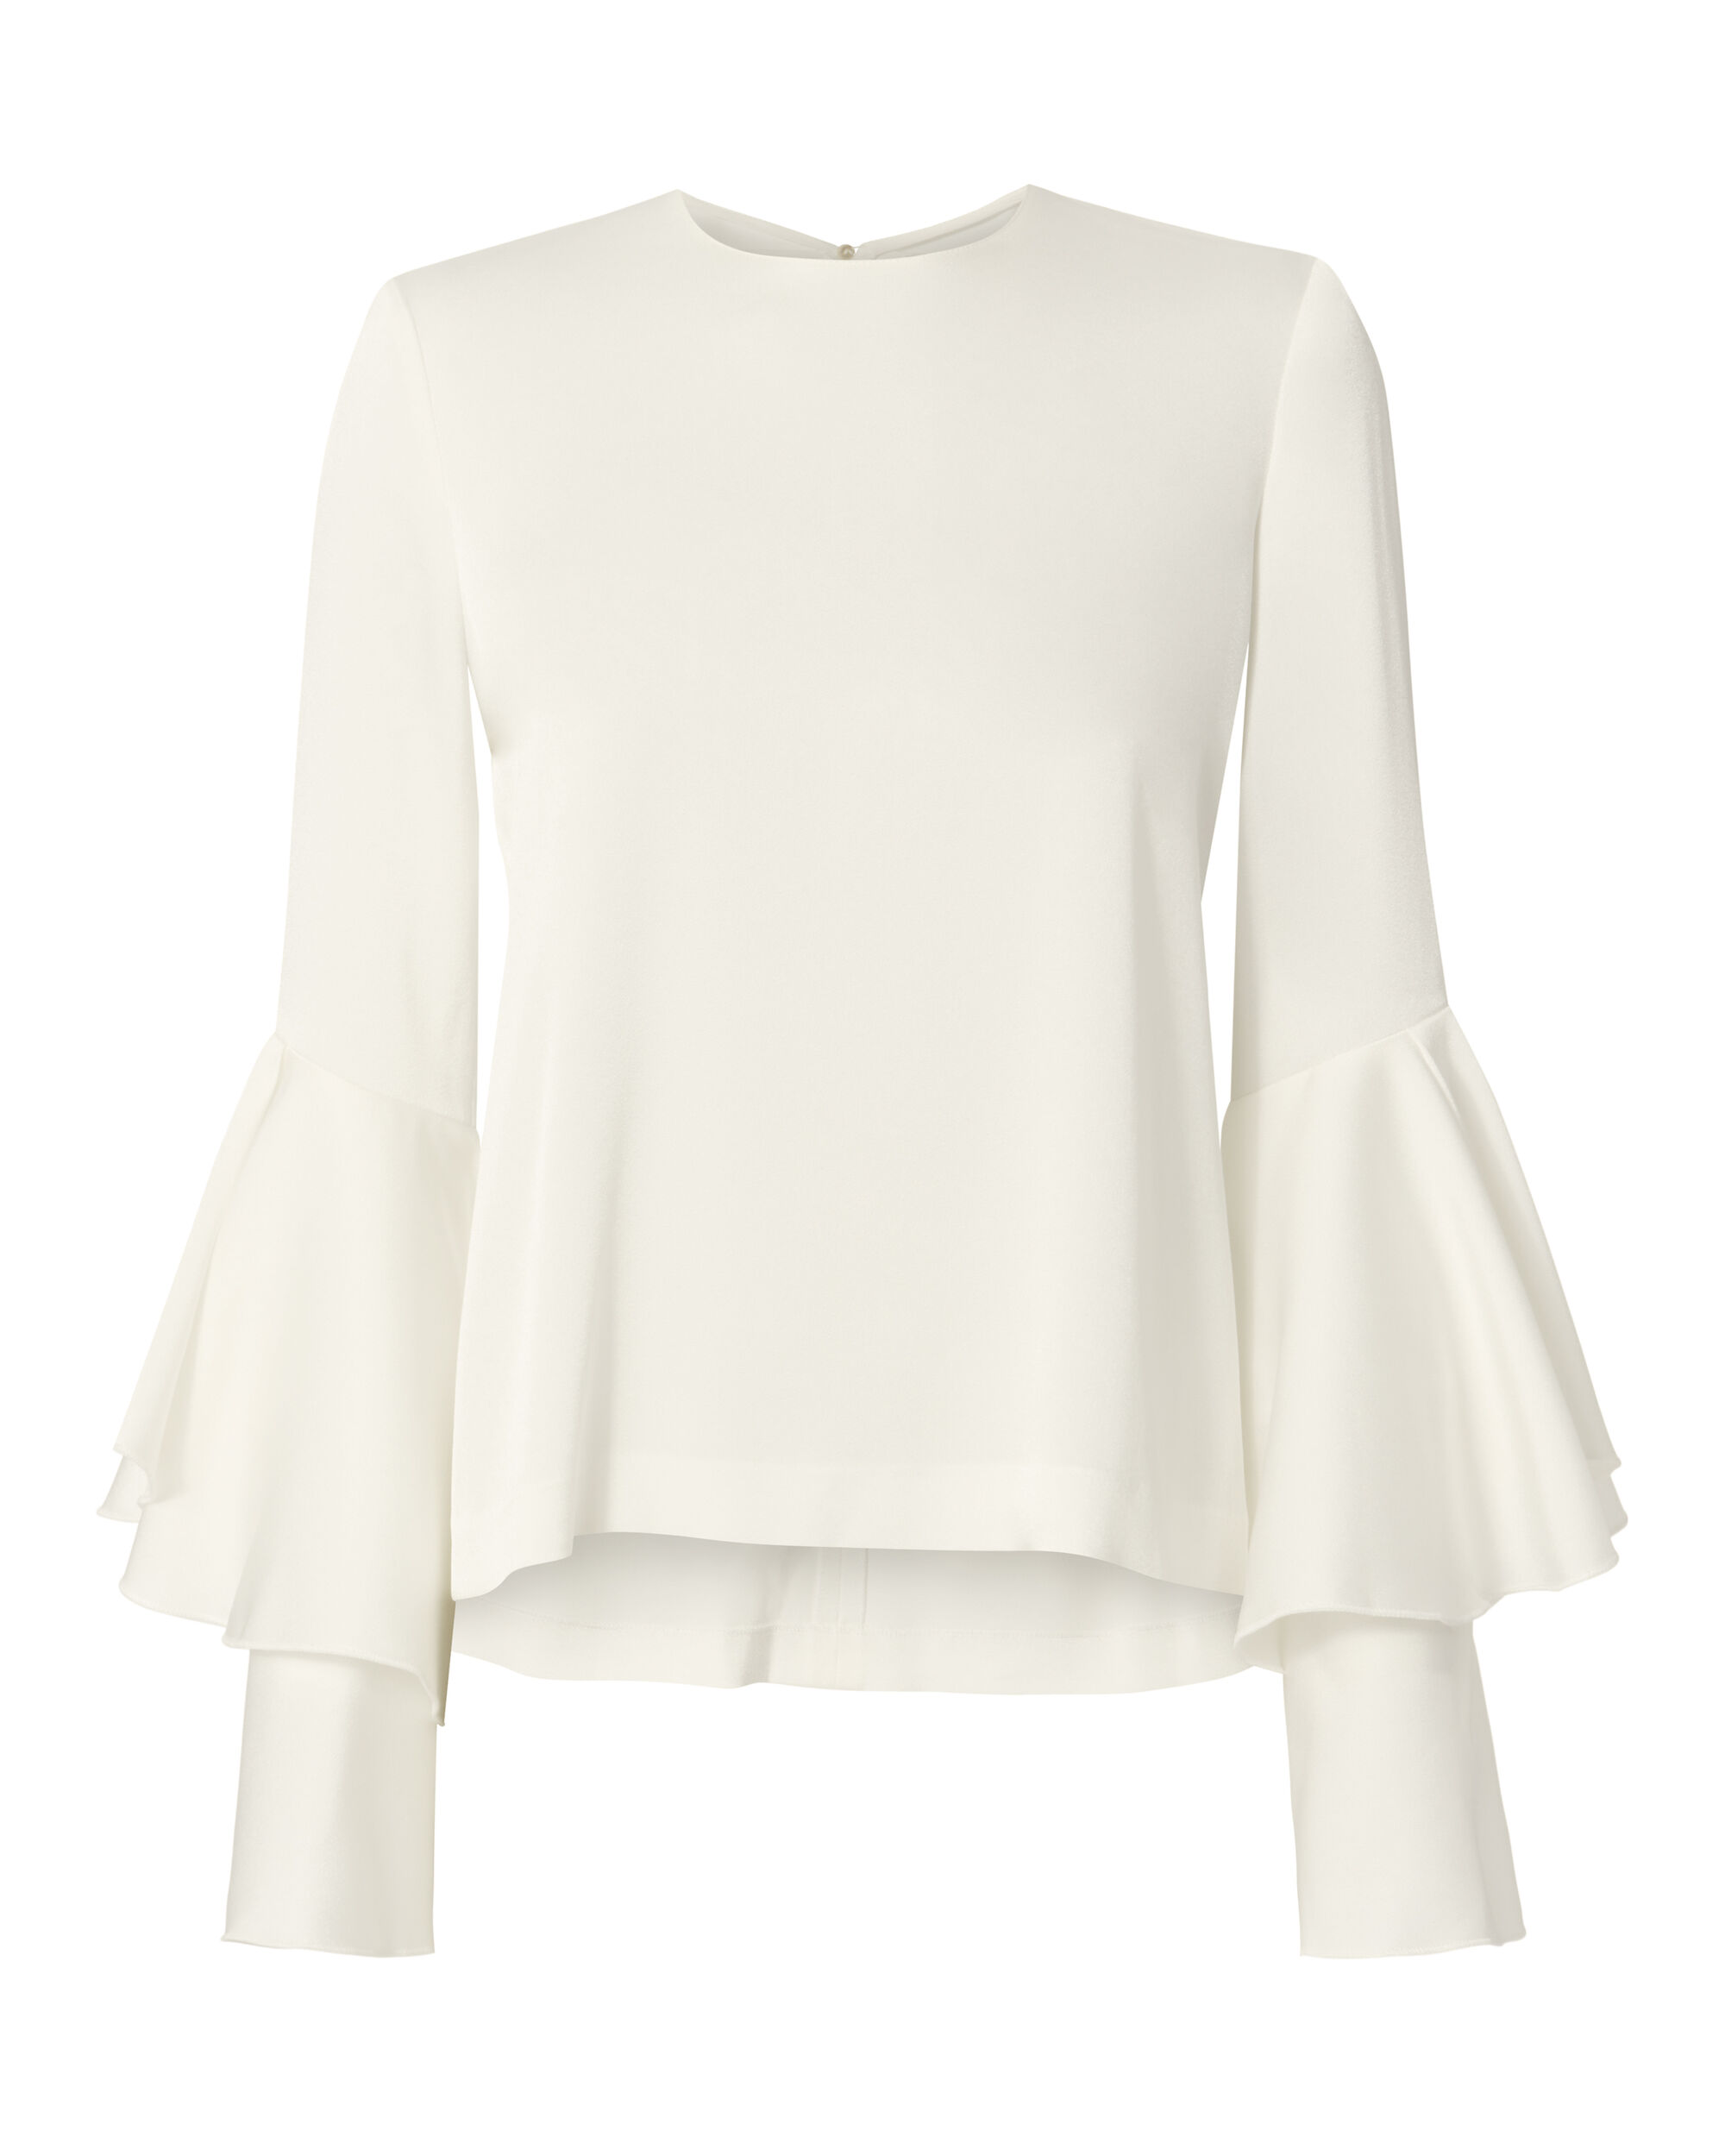 Tiered Bell Sleeve White Satin Top, WHITE, hi-res